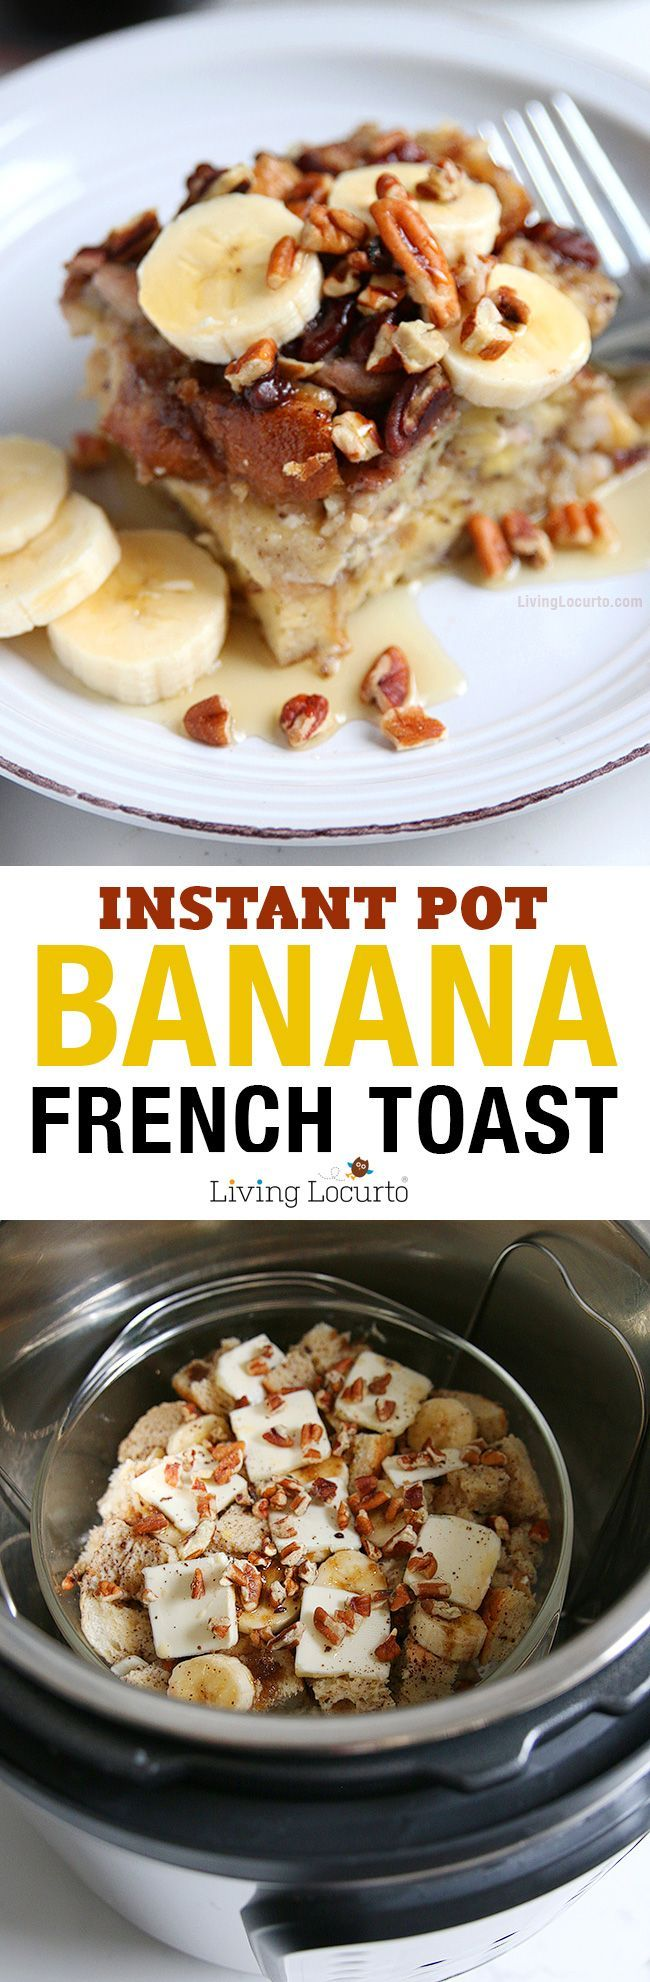 Easy One Pot Meal  Instant Pot Banana French Toast Recipe! How To Make  French